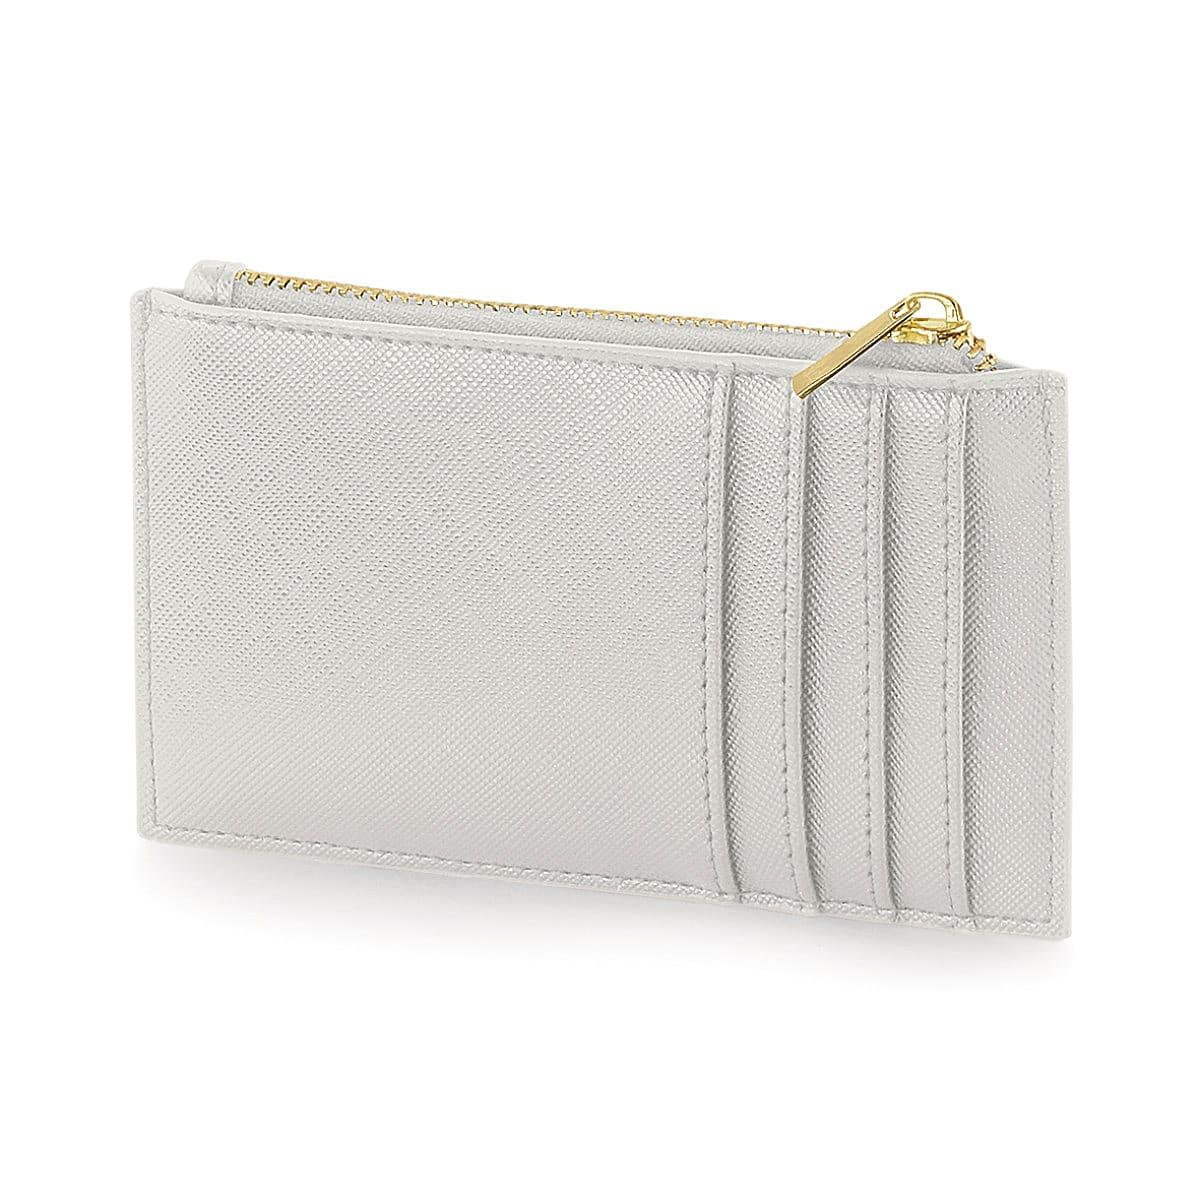 Bagbase Boutique Card Holder in Soft Grey (Product Code: BG754)